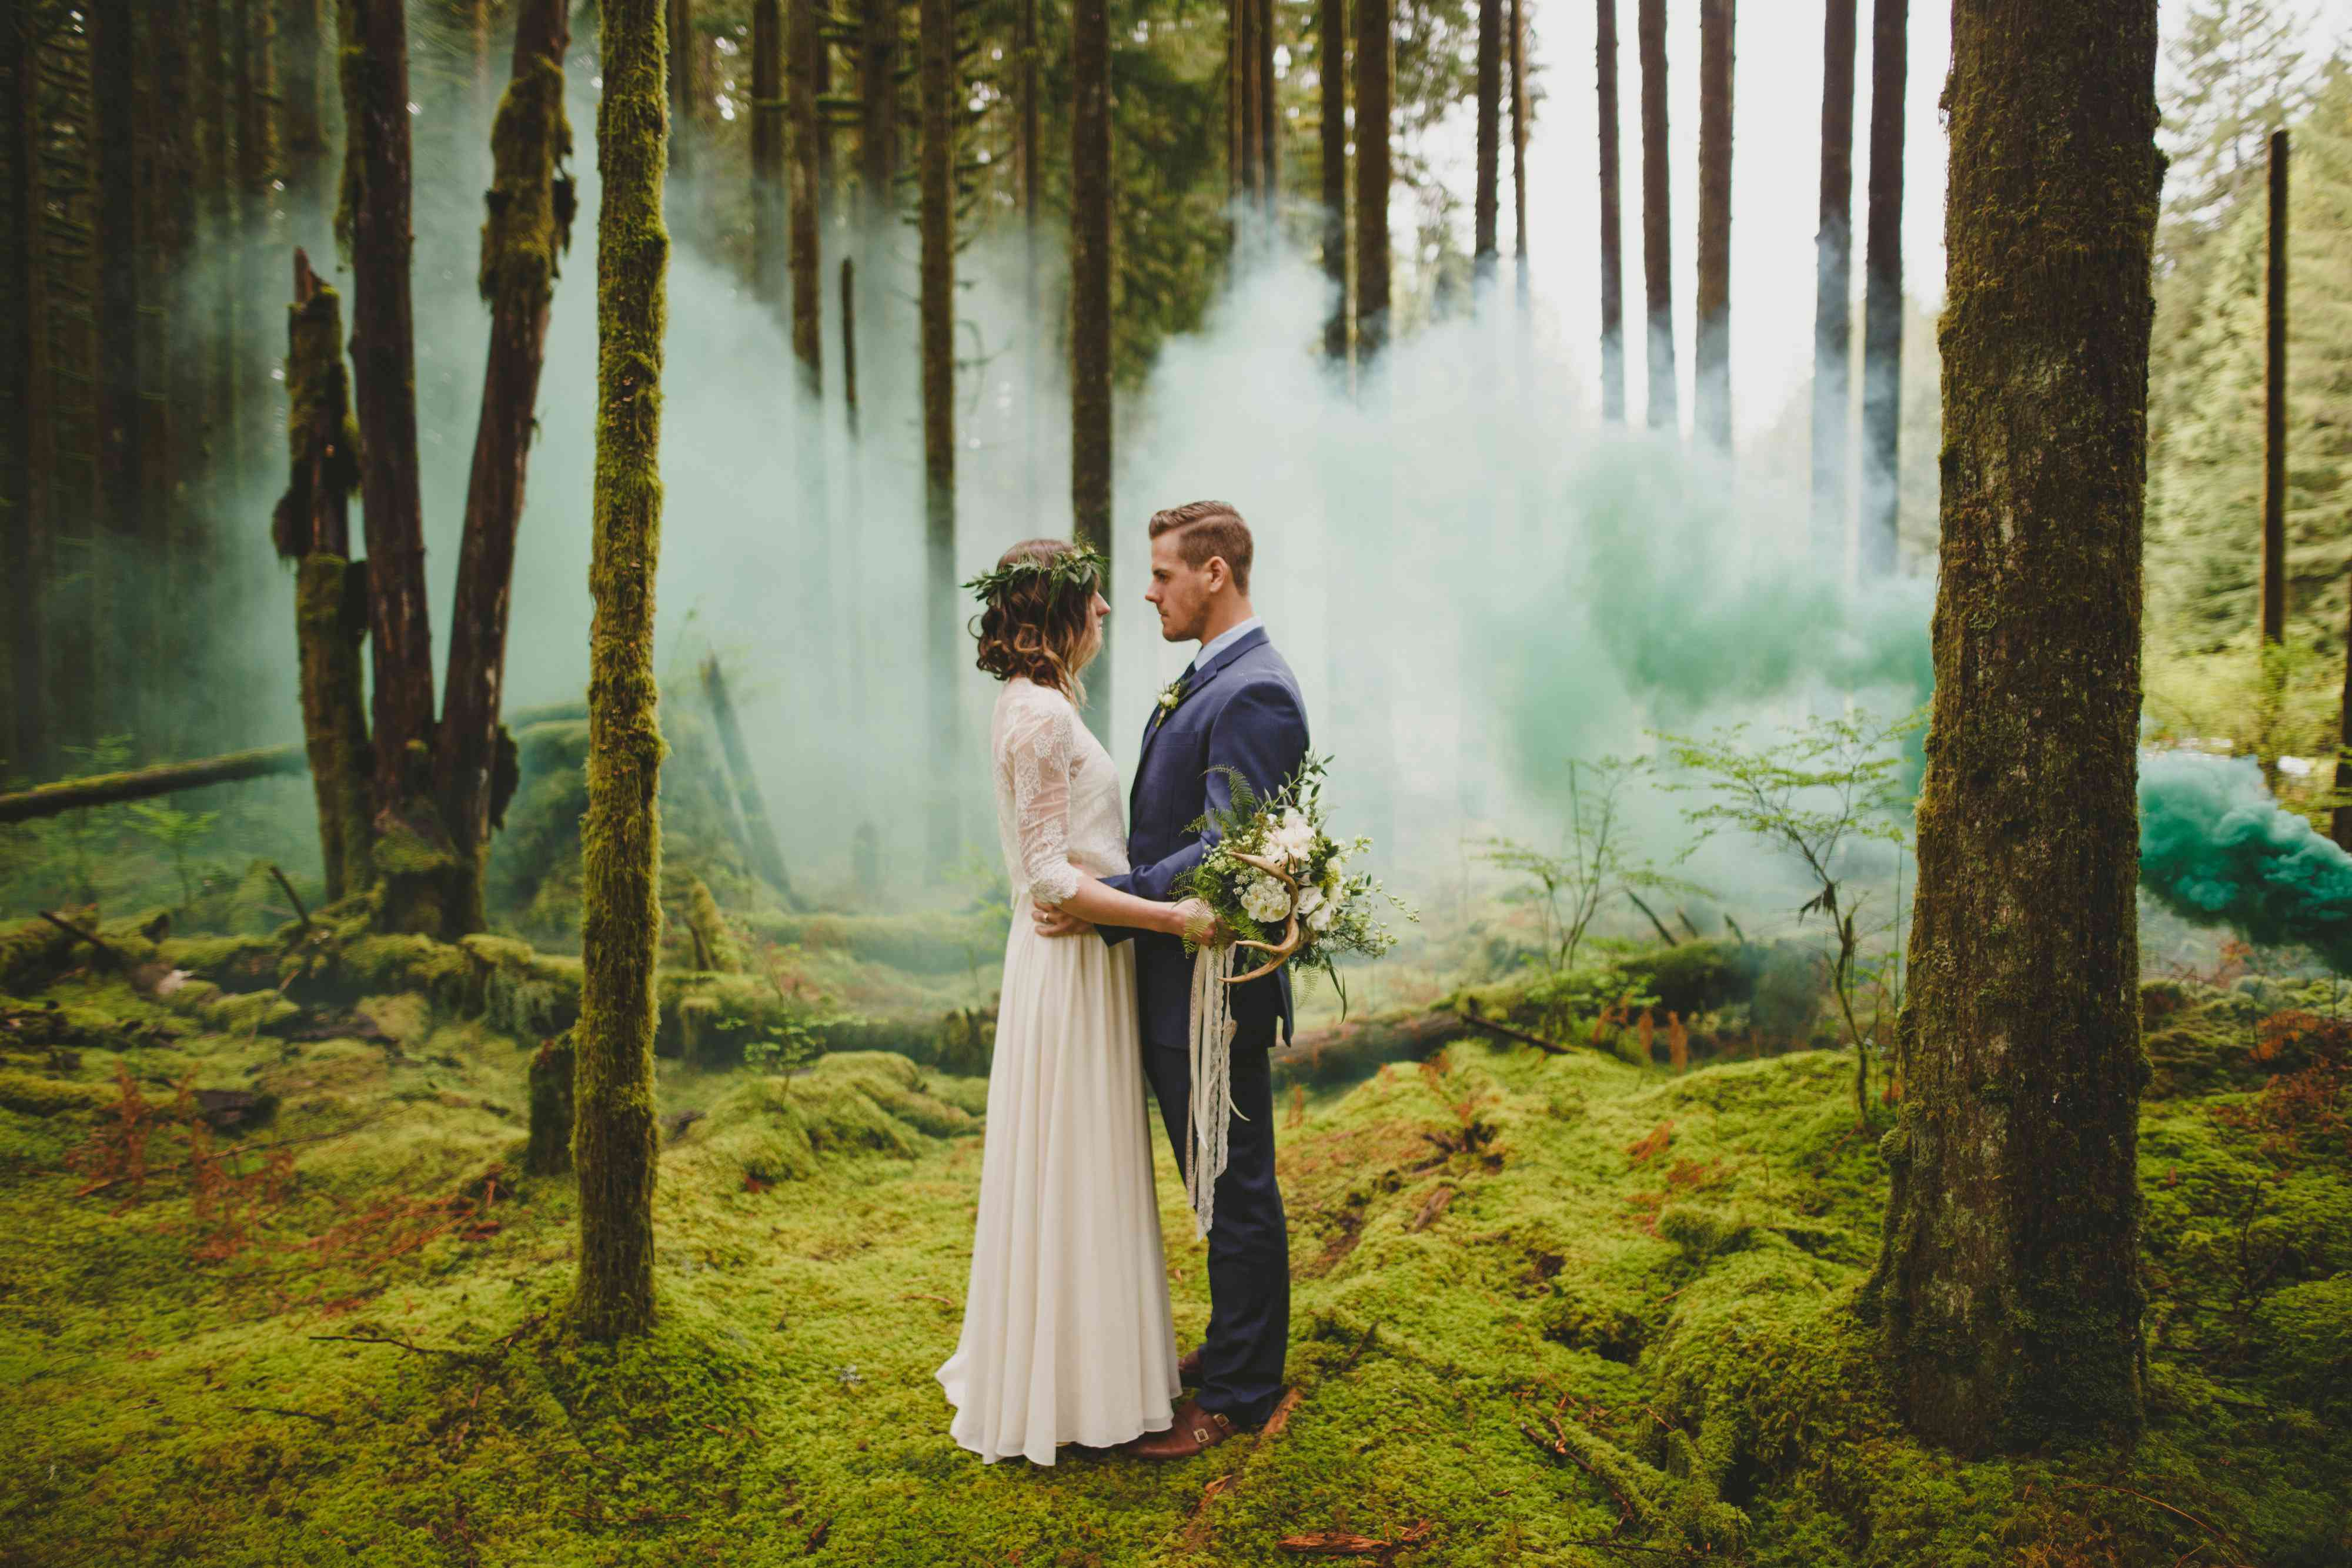 25 Cool & Colorful Reasons You Need Smoke Bombs in Your